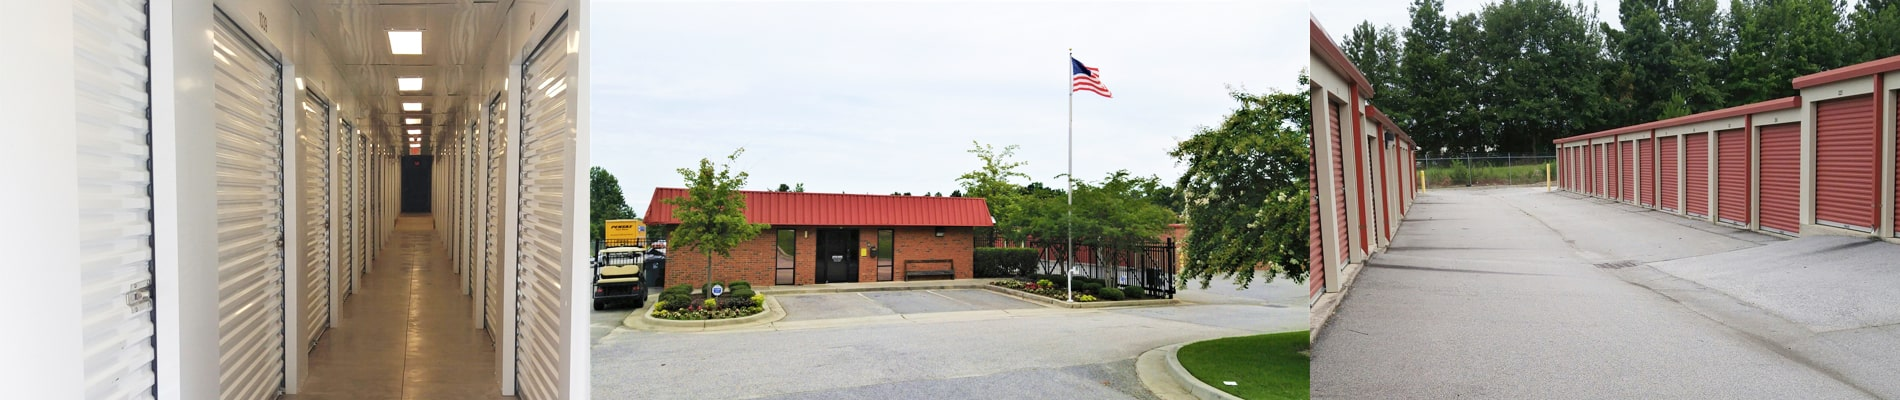 Grovetown GA Self Storage